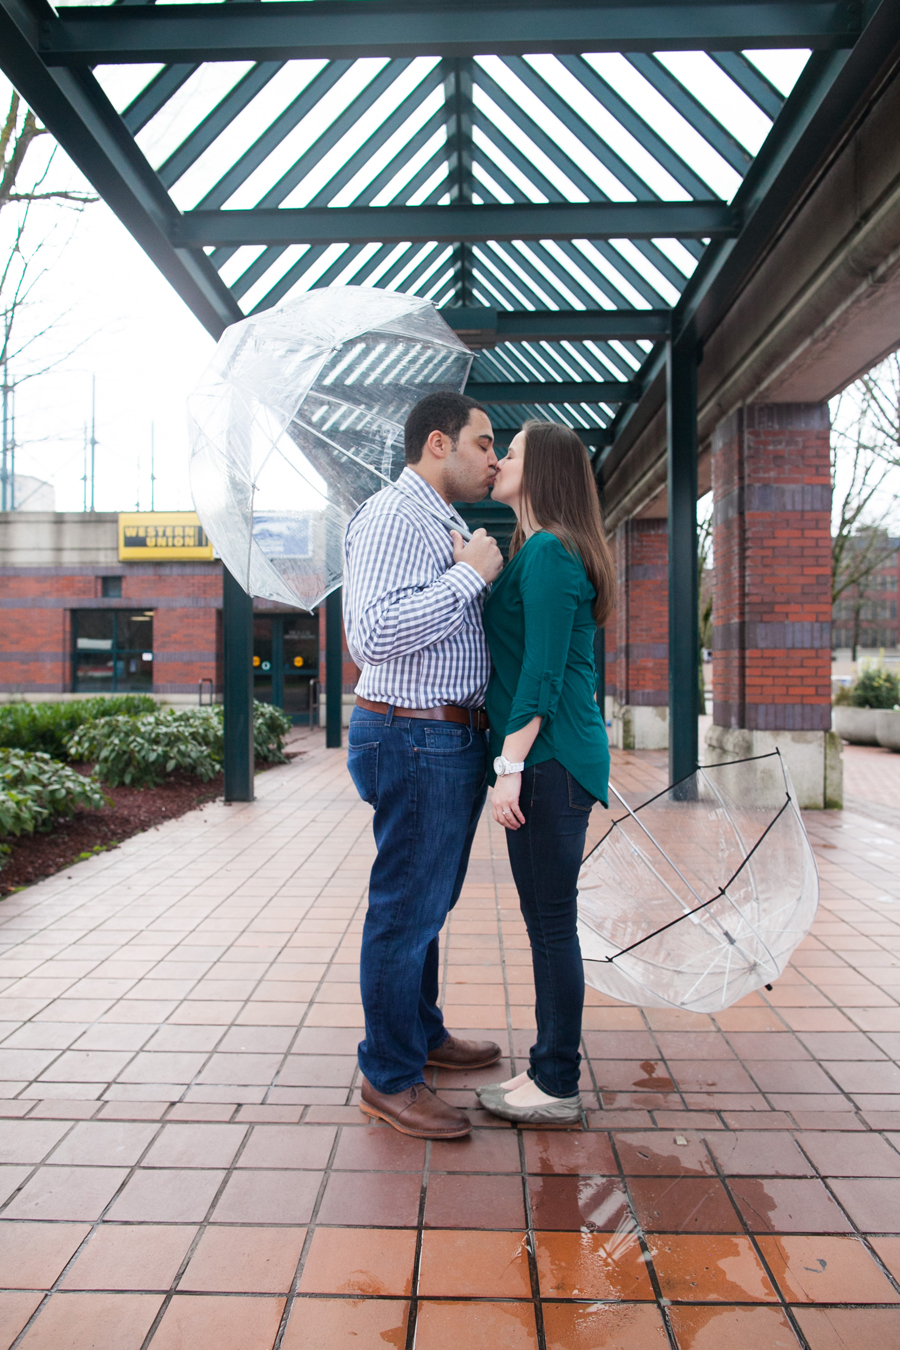 018-pdx-union-station-engagement-jordan-jolene.jpg